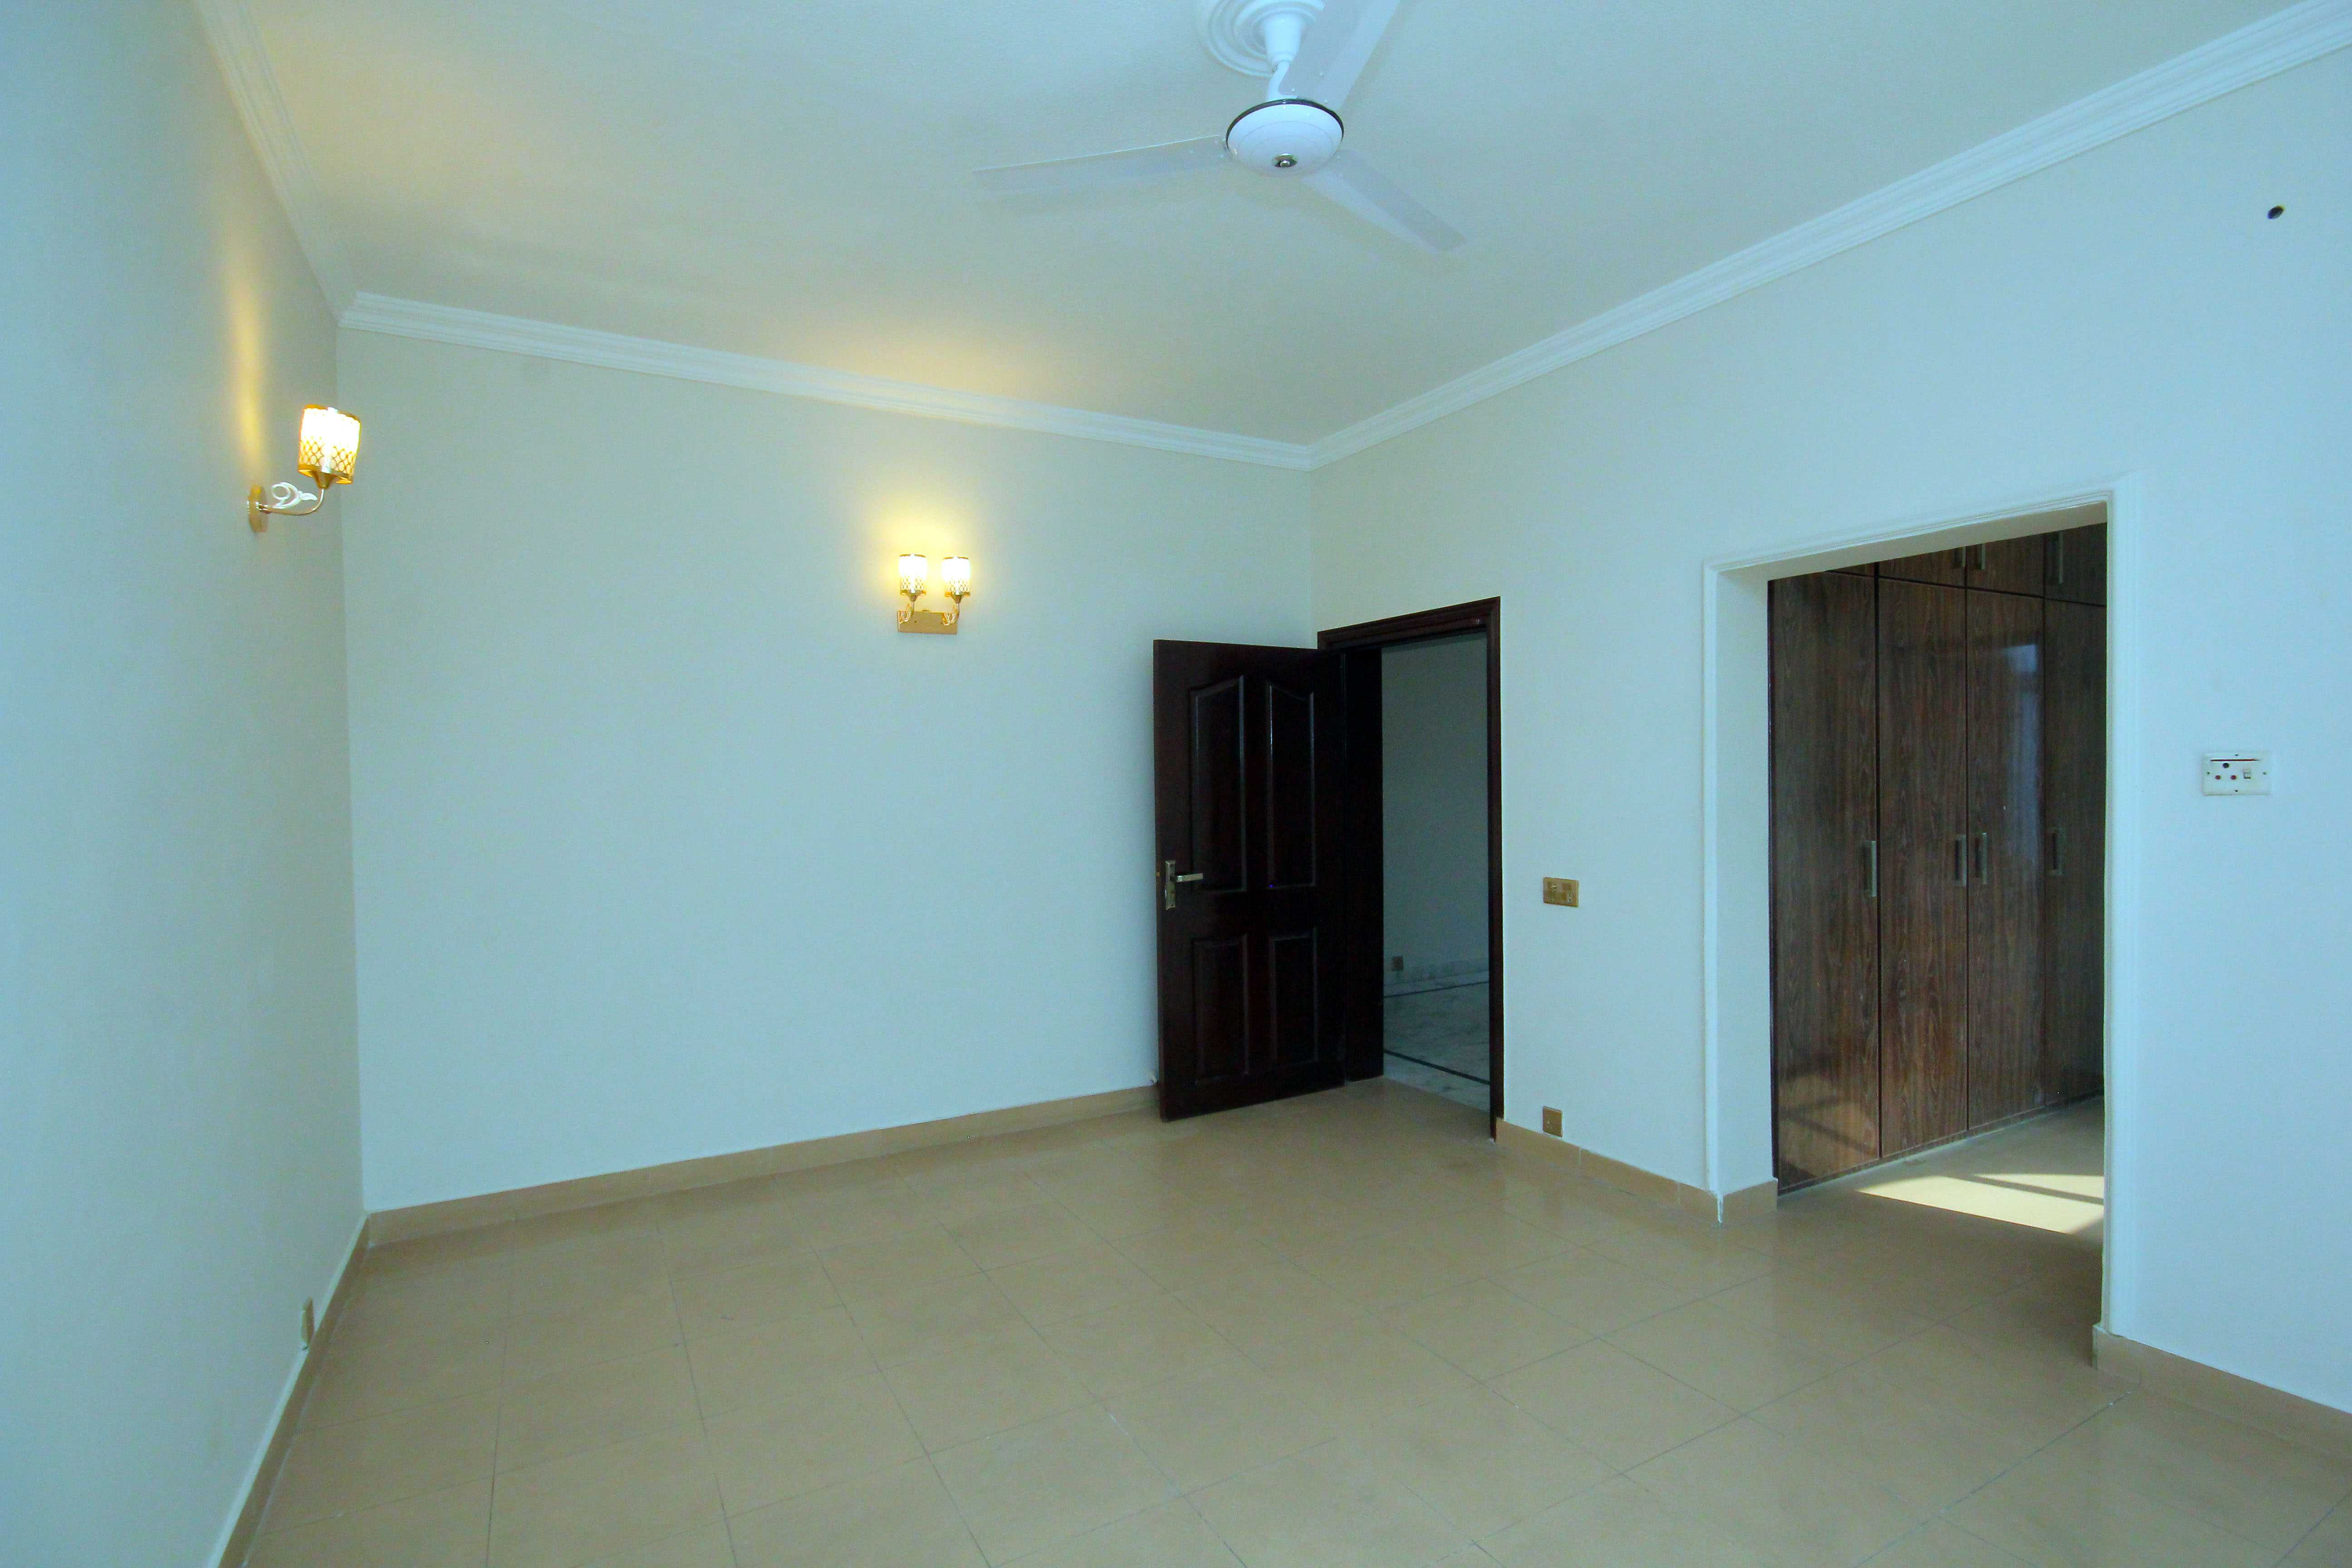 10 Marla Self constructed Bungalow DHA